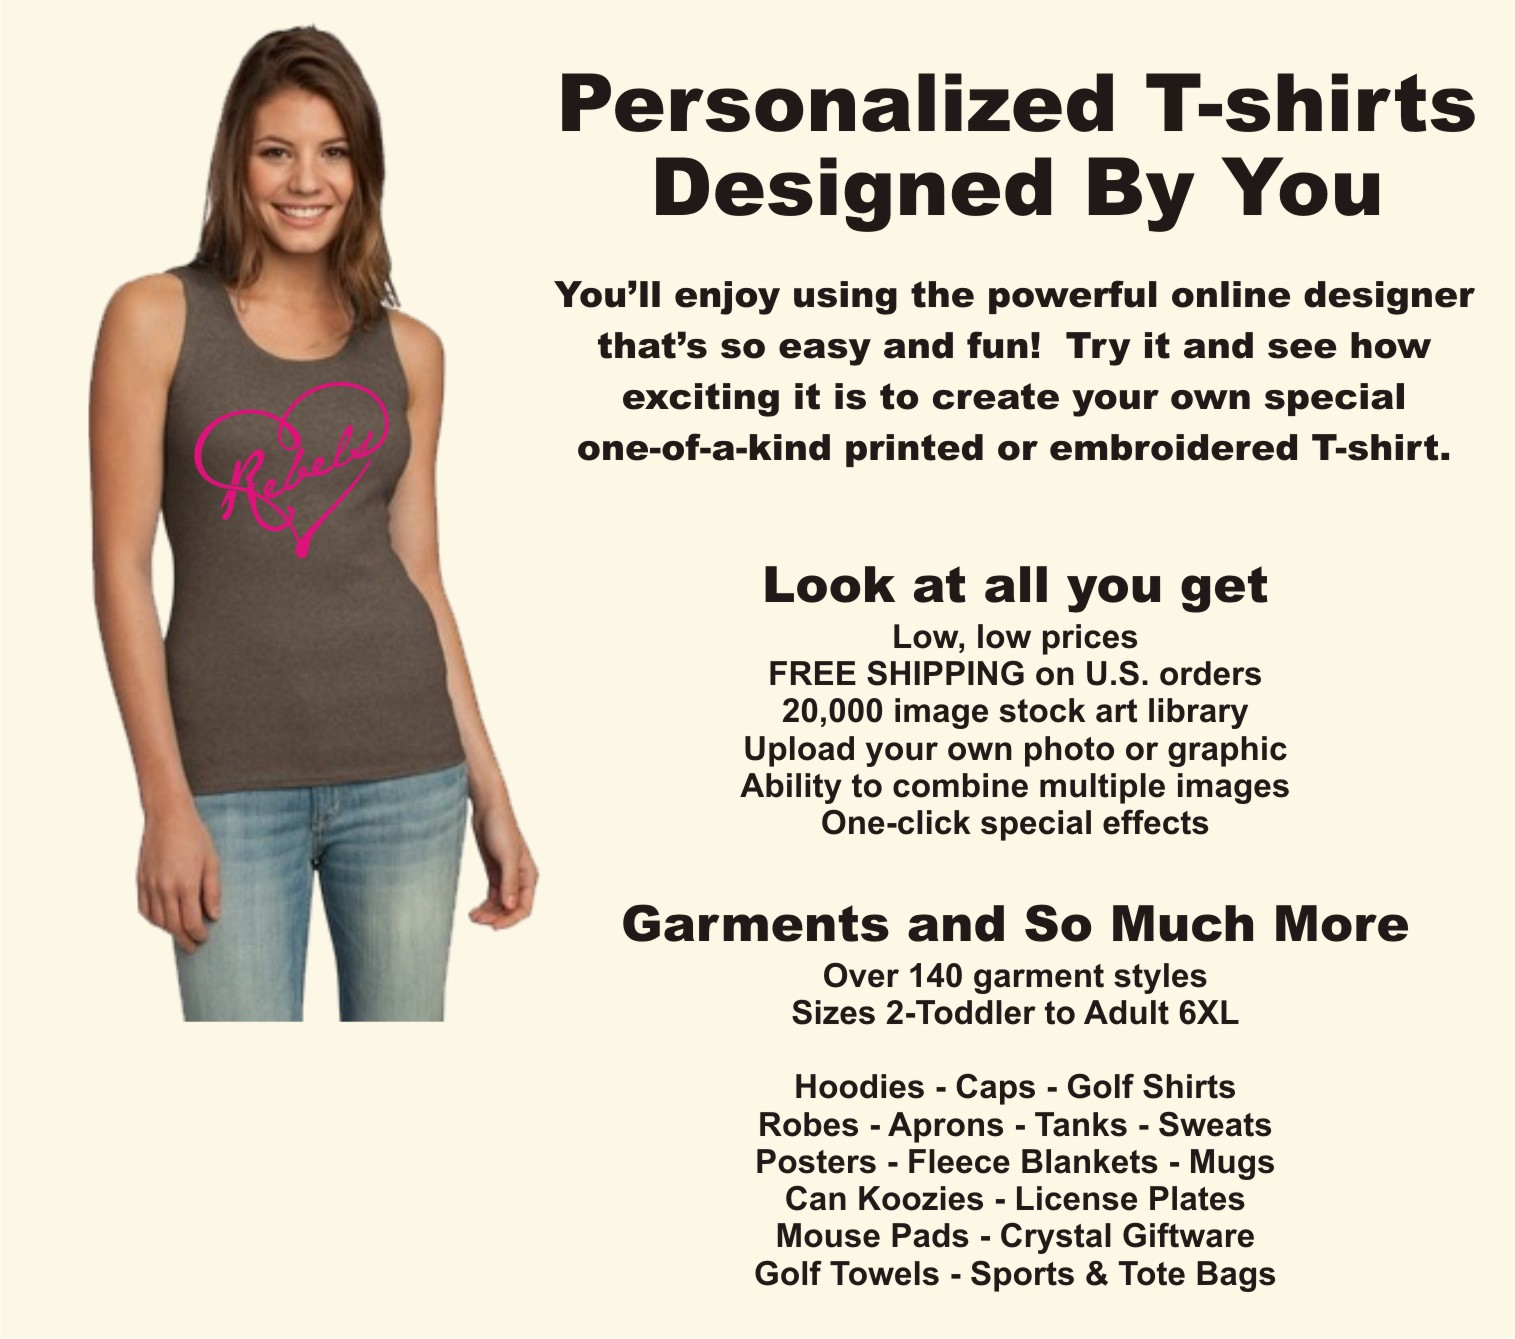 Design, personalize, create, and customize your own T-shirt or tee shirt.